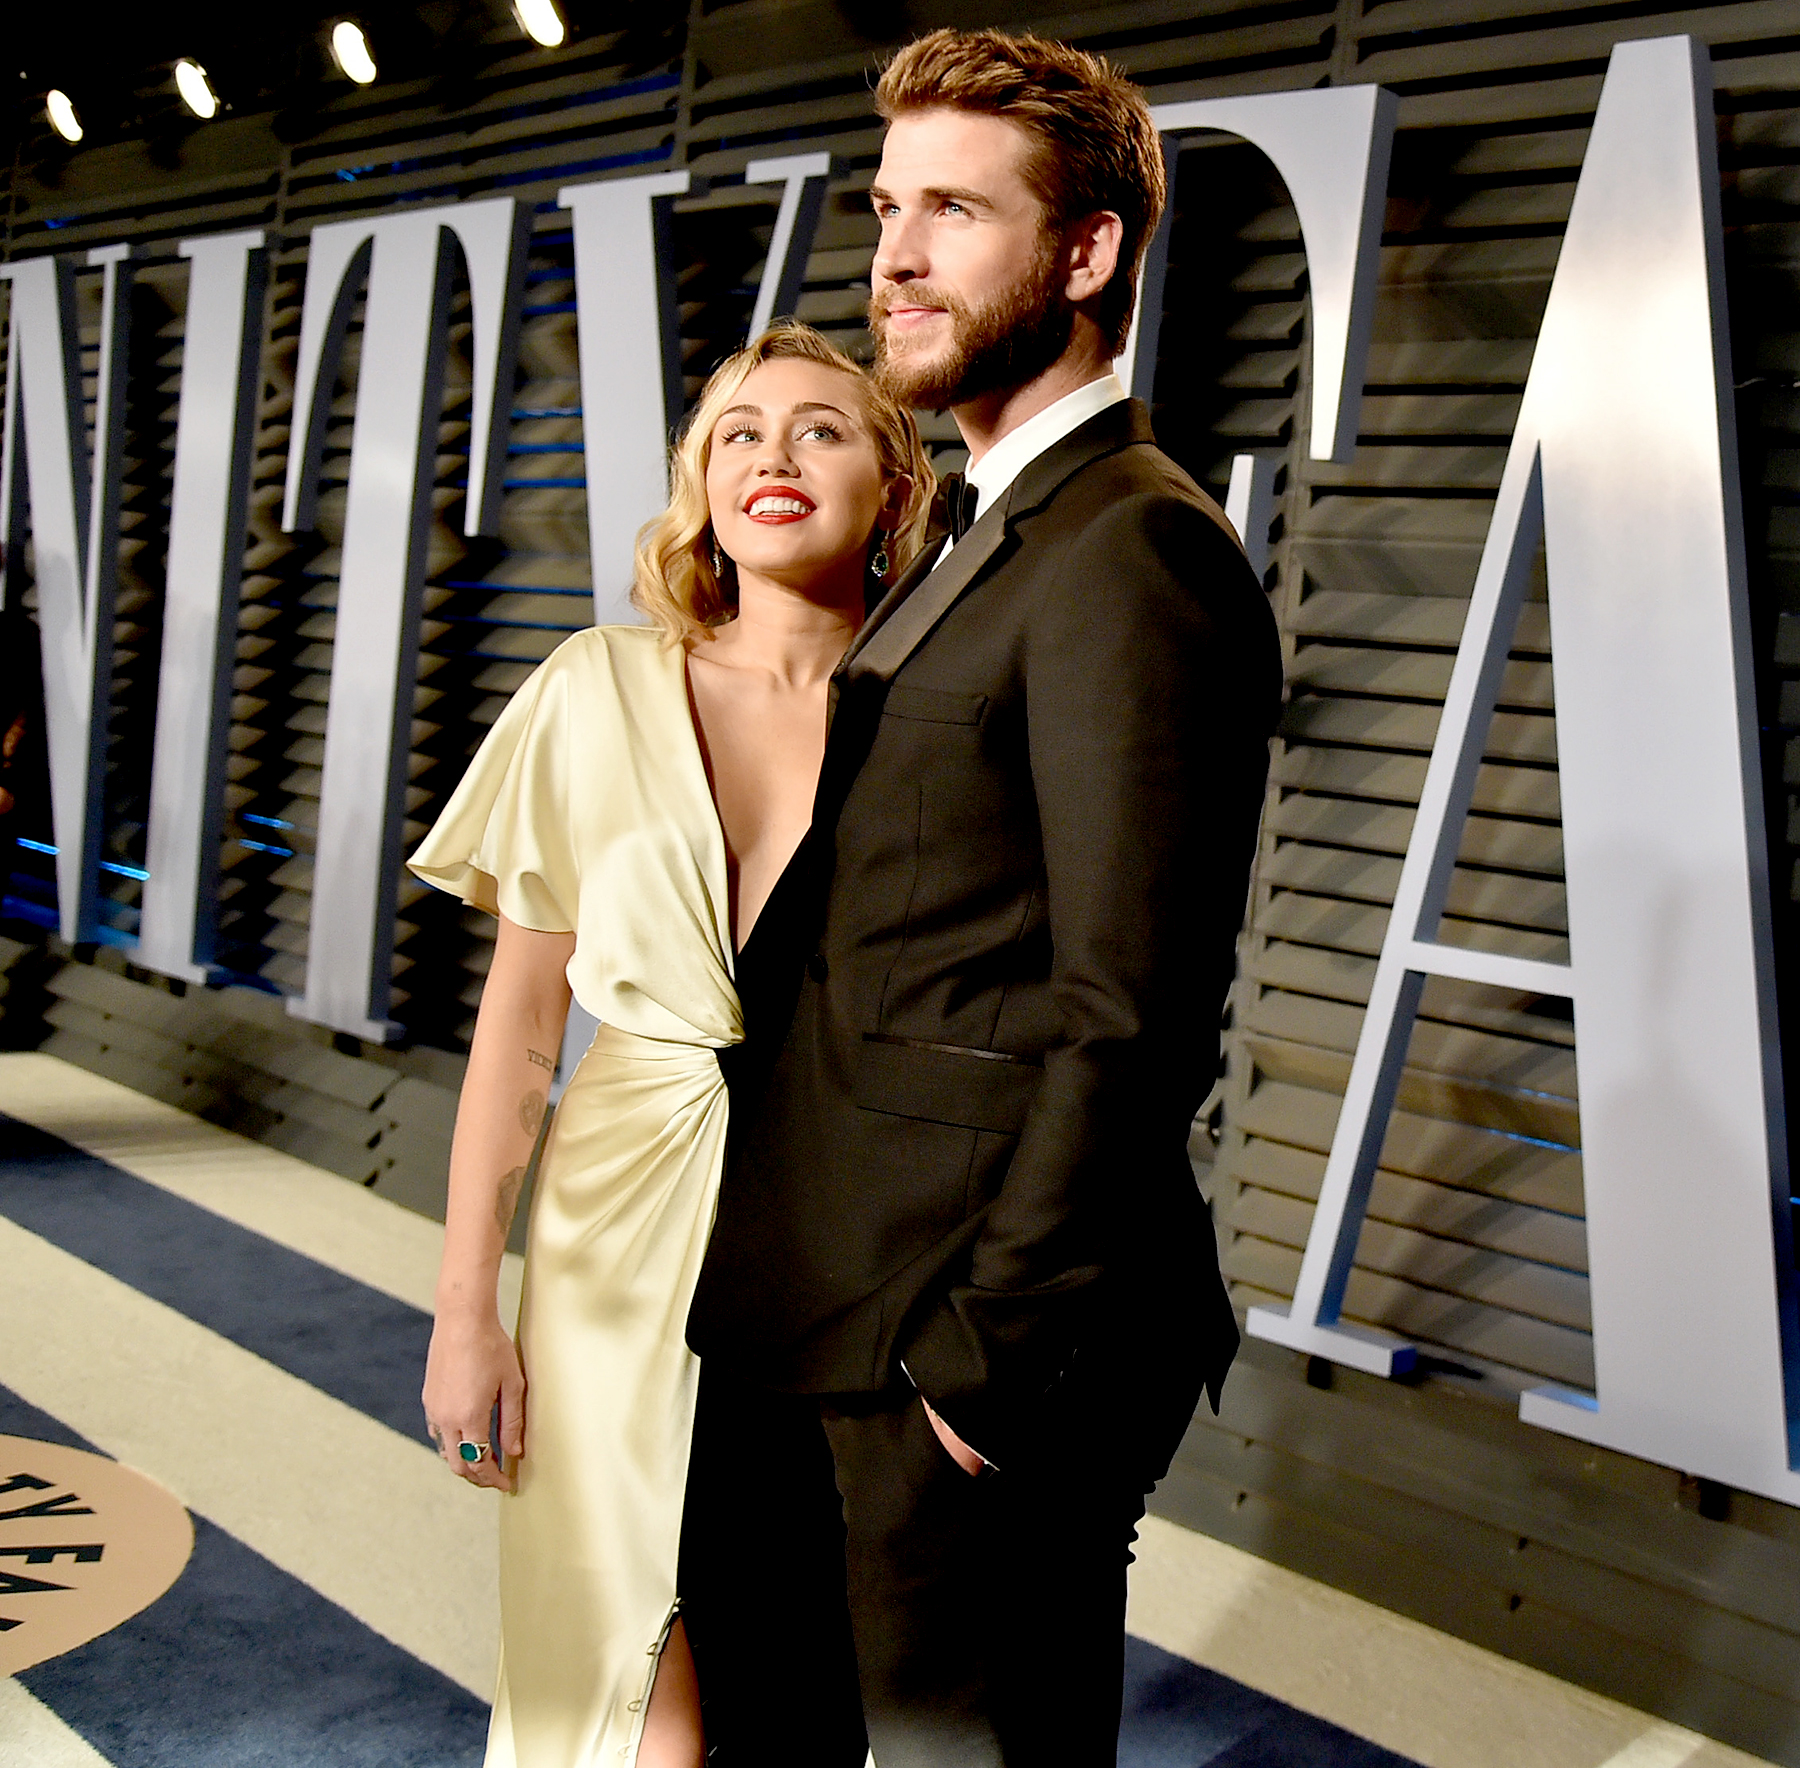 Miley Cyrus Liam Hemsworth Have Date Night At Oscars Parties Pics